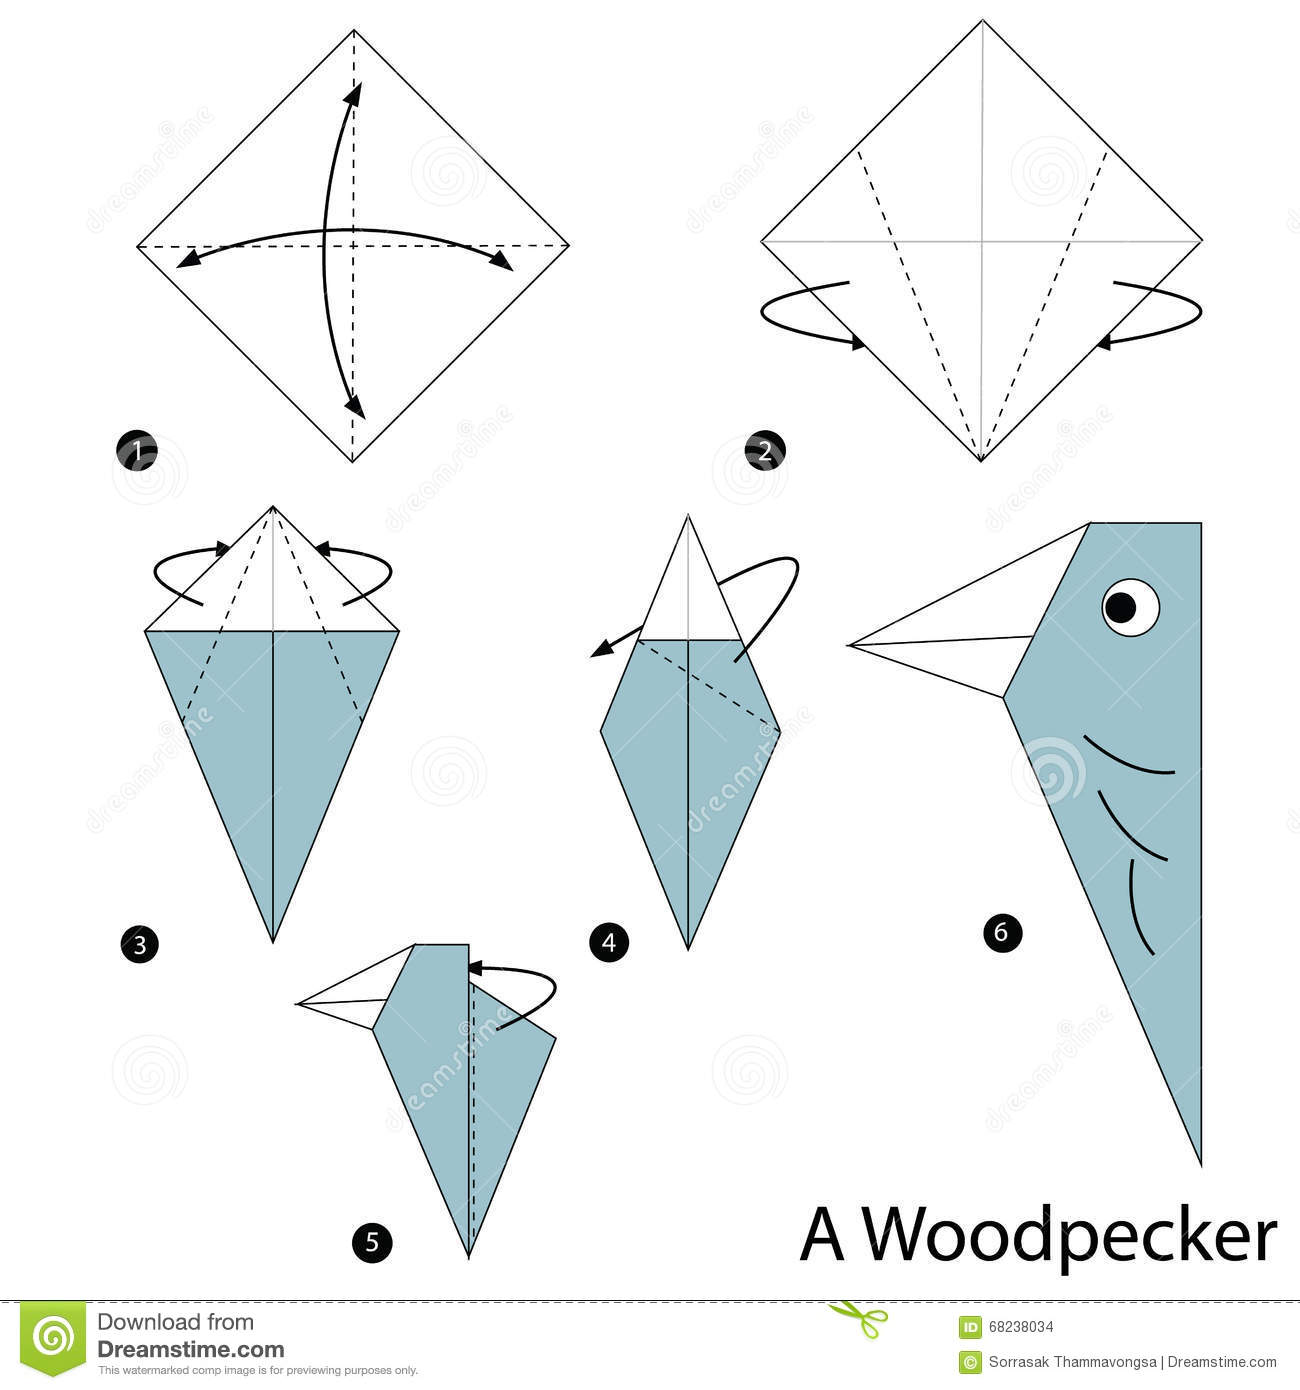 Step by step instructions how to make origami a woodpecker for Origami swan easy step by step